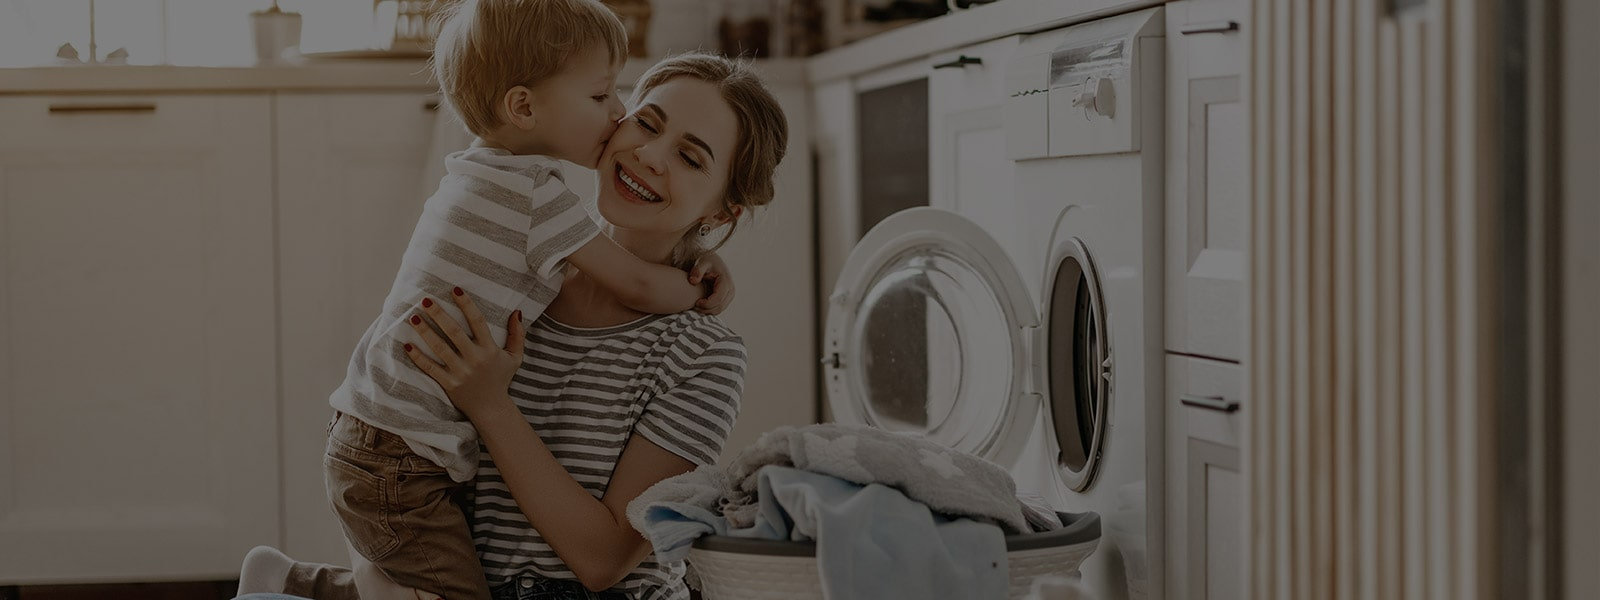 It's an image of a mother and a baby sitting in front of a washing machine.